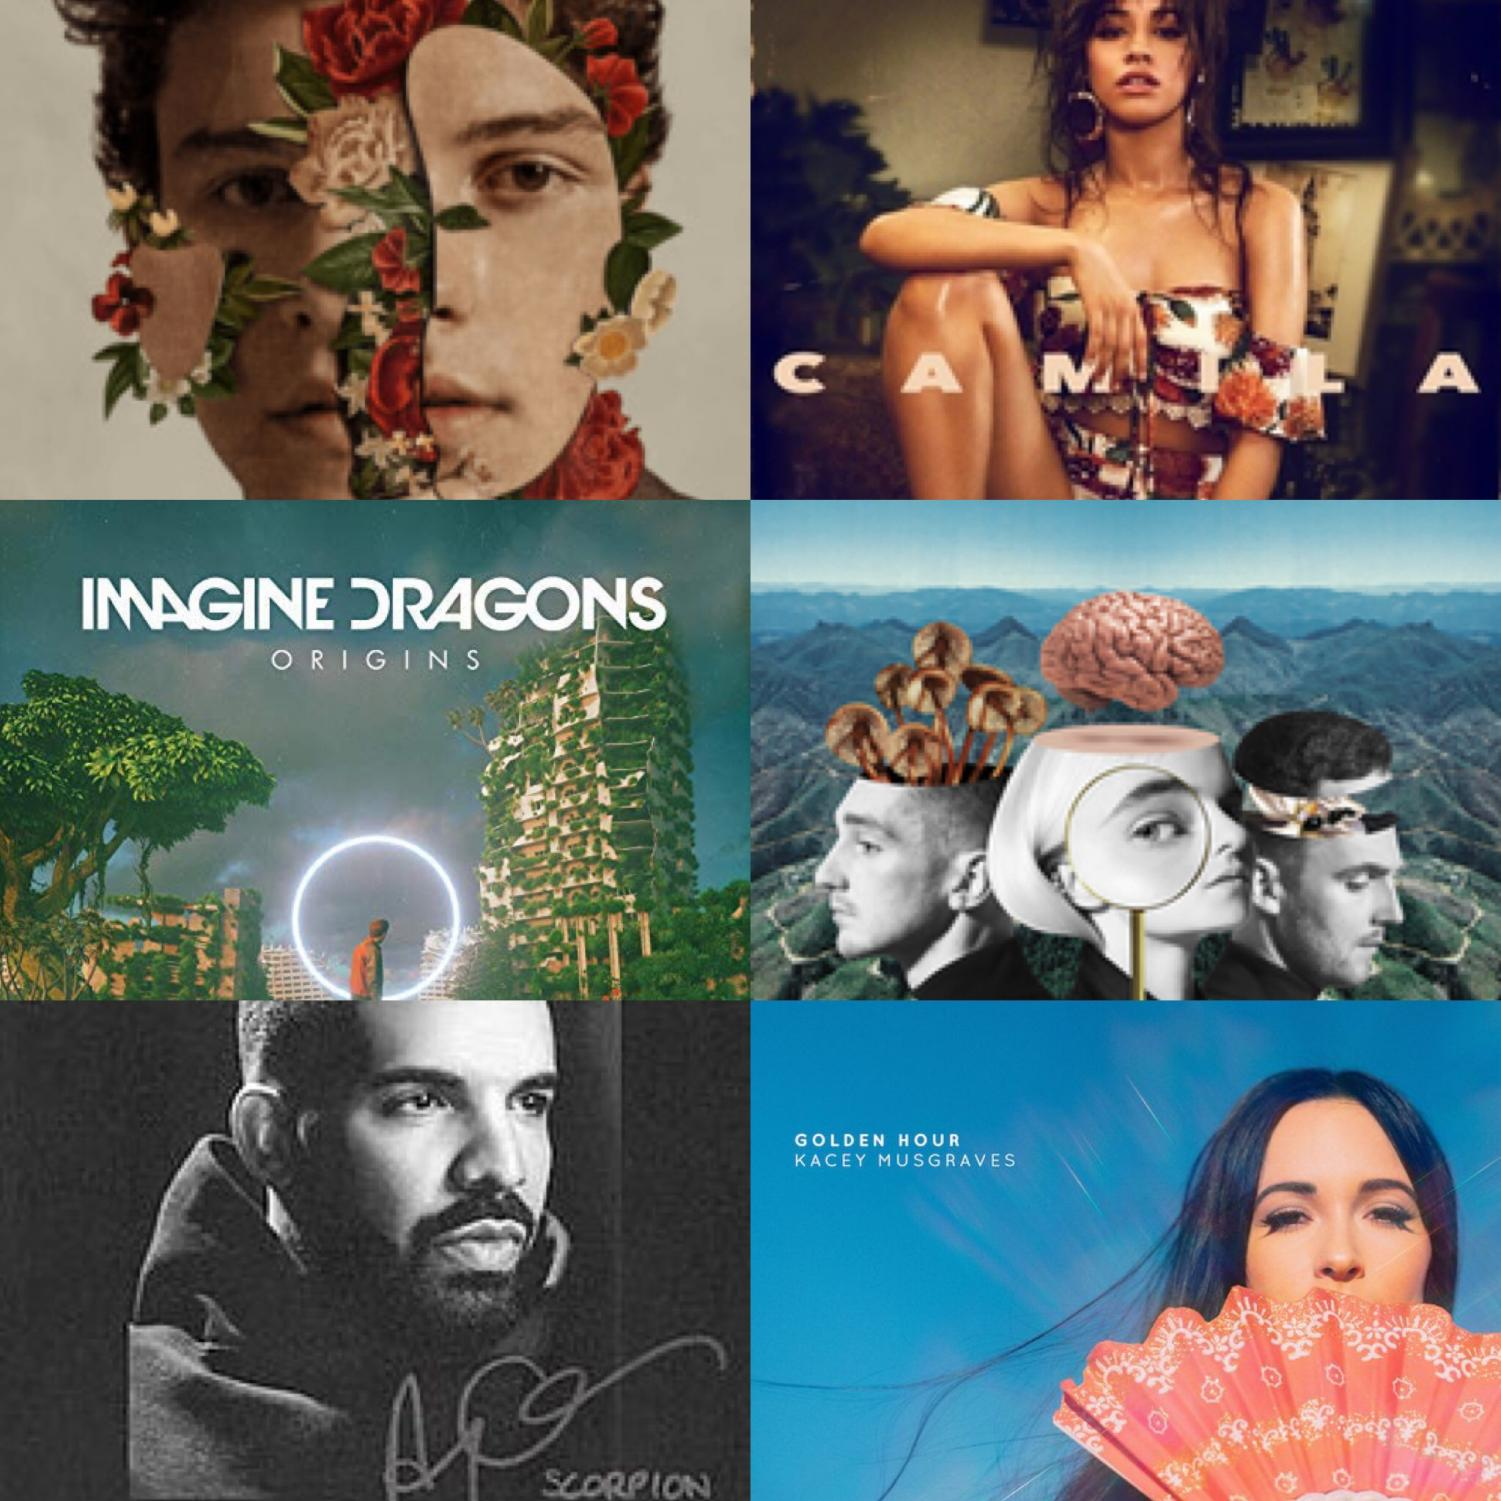 Shawn Mendes, Camila, Origins, What is Love? and Scorpion album covers courtesy of Wikimedia Commons. Golden Hour album cover courtesy of itunes.  New albums were released in each genre this year, with many of them now grammy nominated. This year new artists emerged, such as Camila Cabello, and old pros like Drake continued to top the charts.